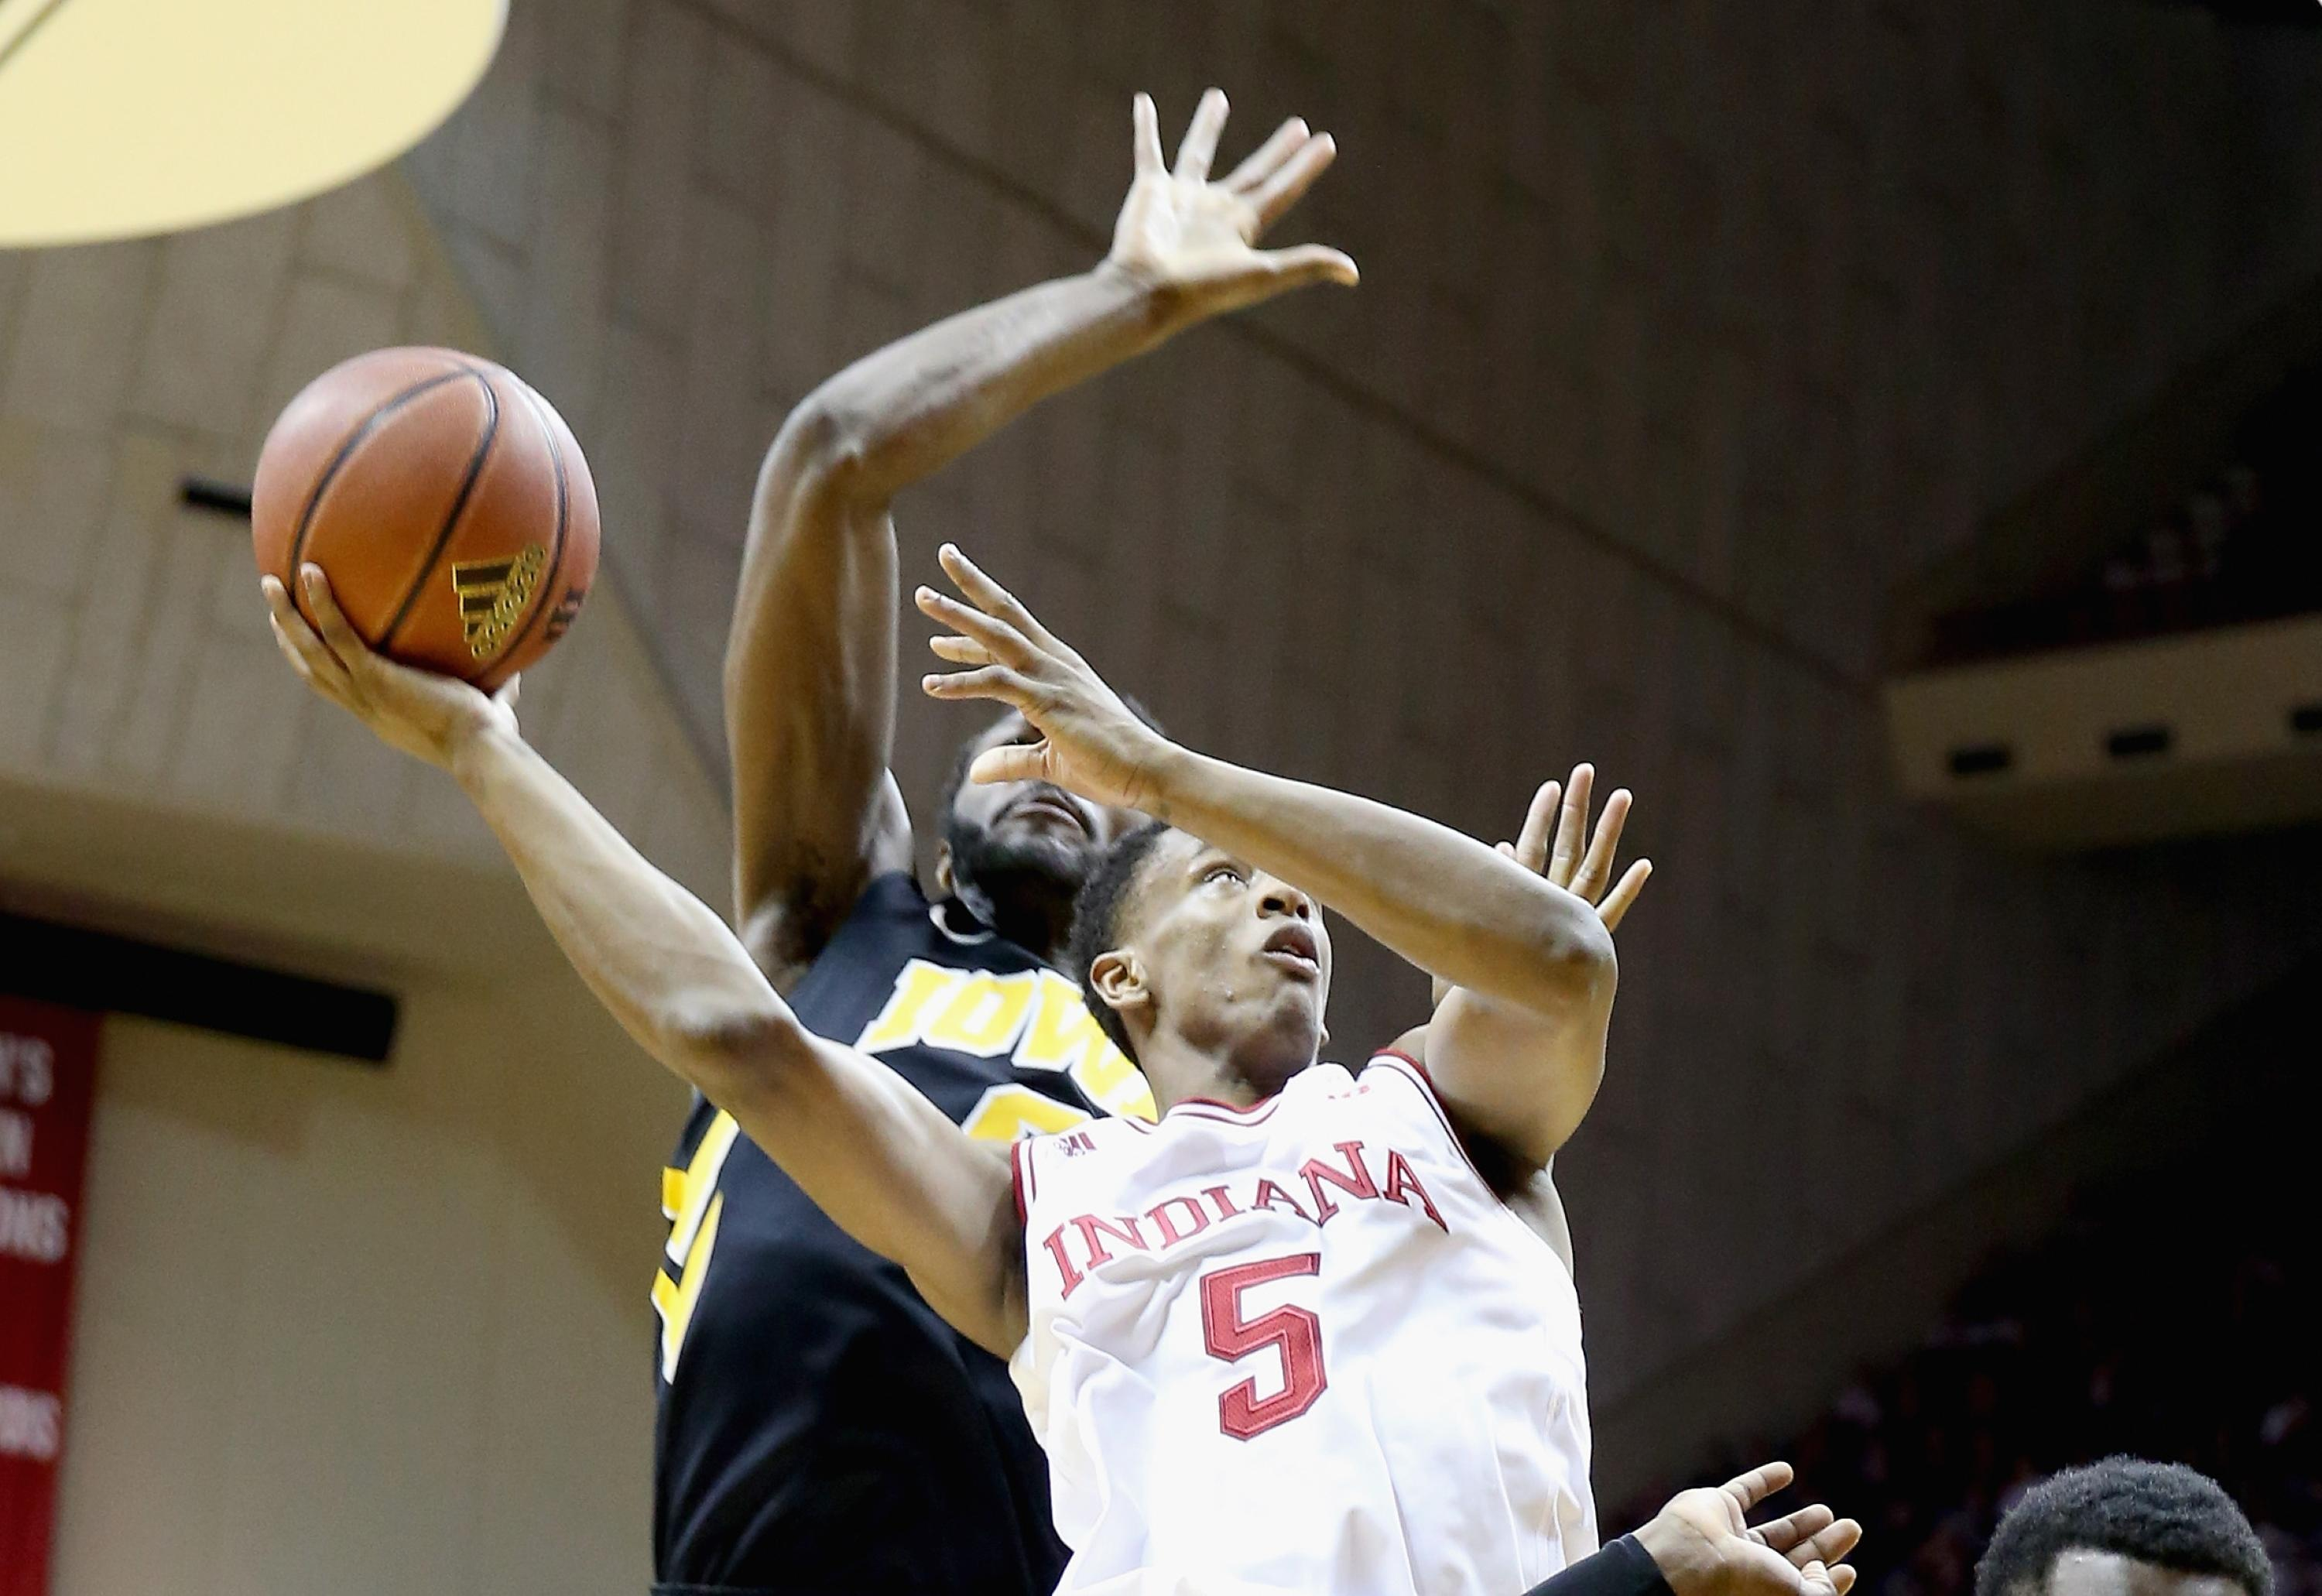 Indiana's season is teetering after seventh loss in 11 games